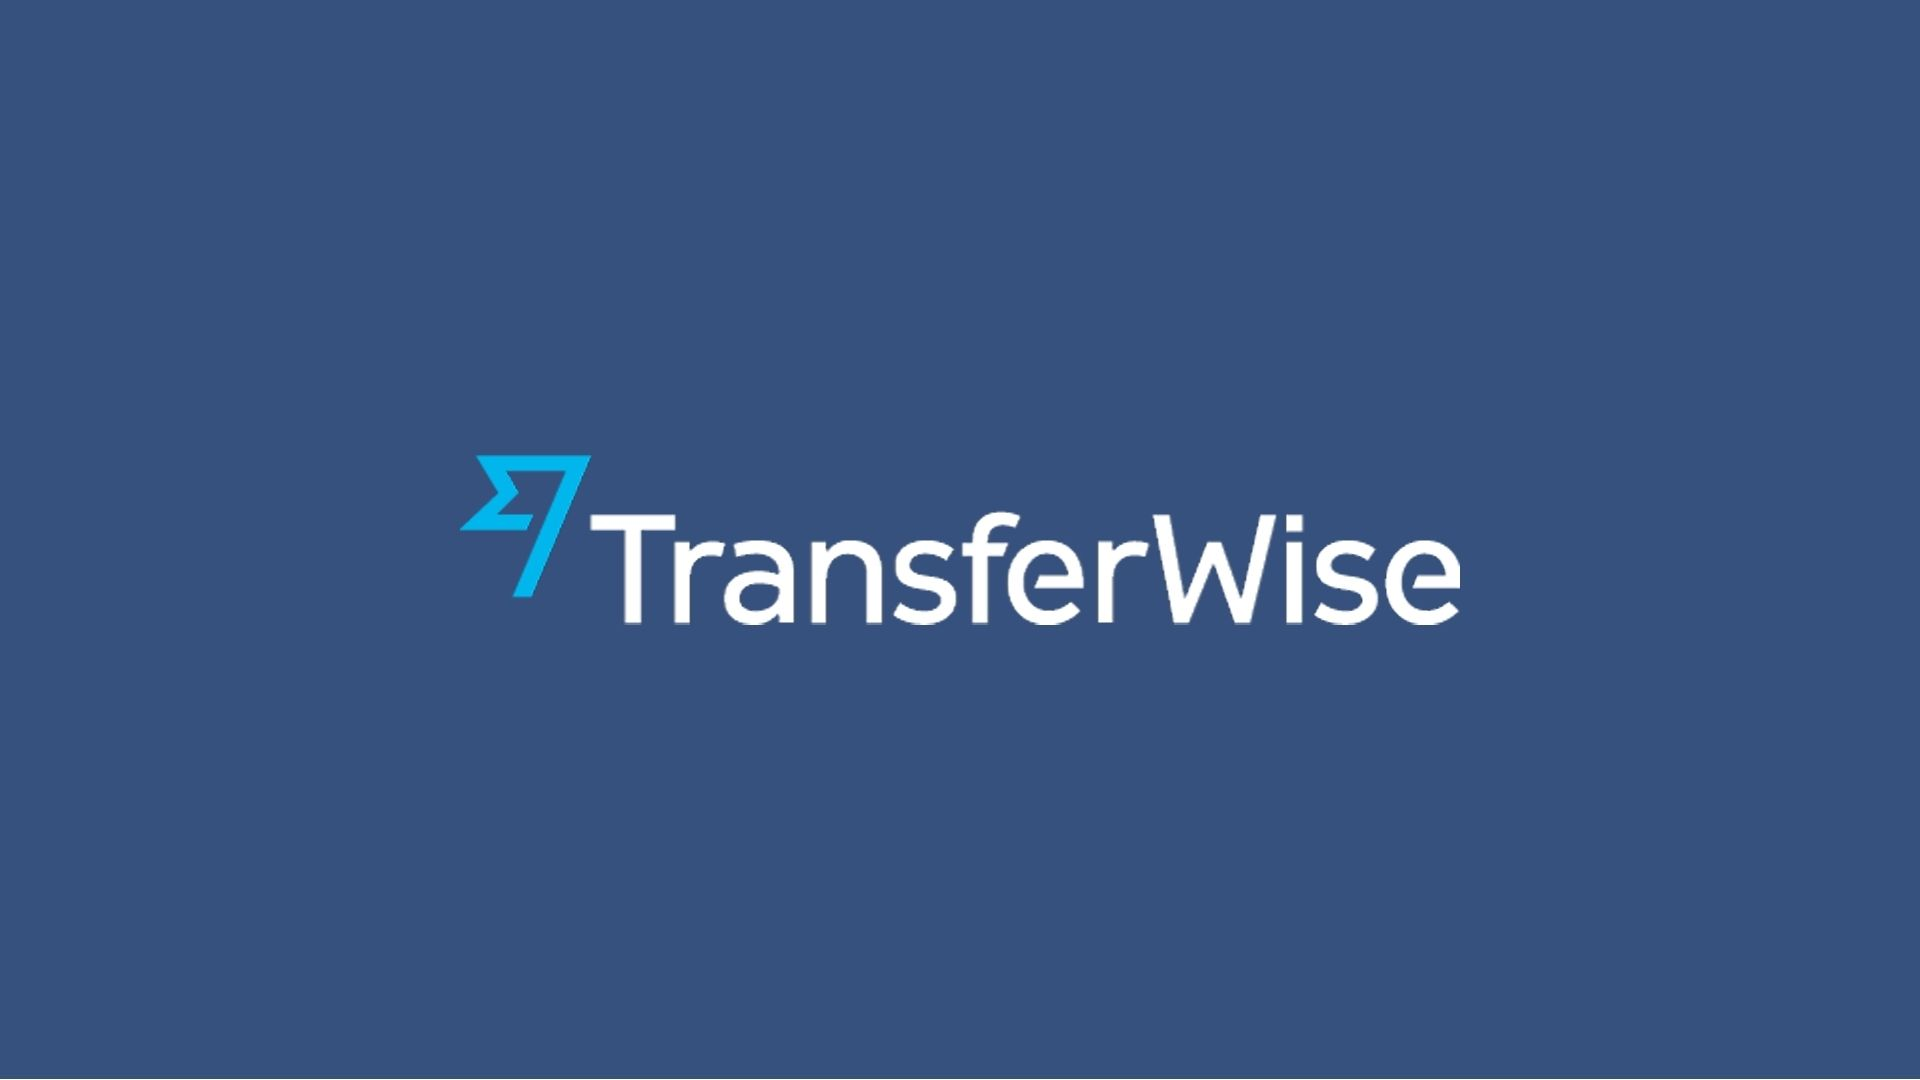 We now accept TransferWise